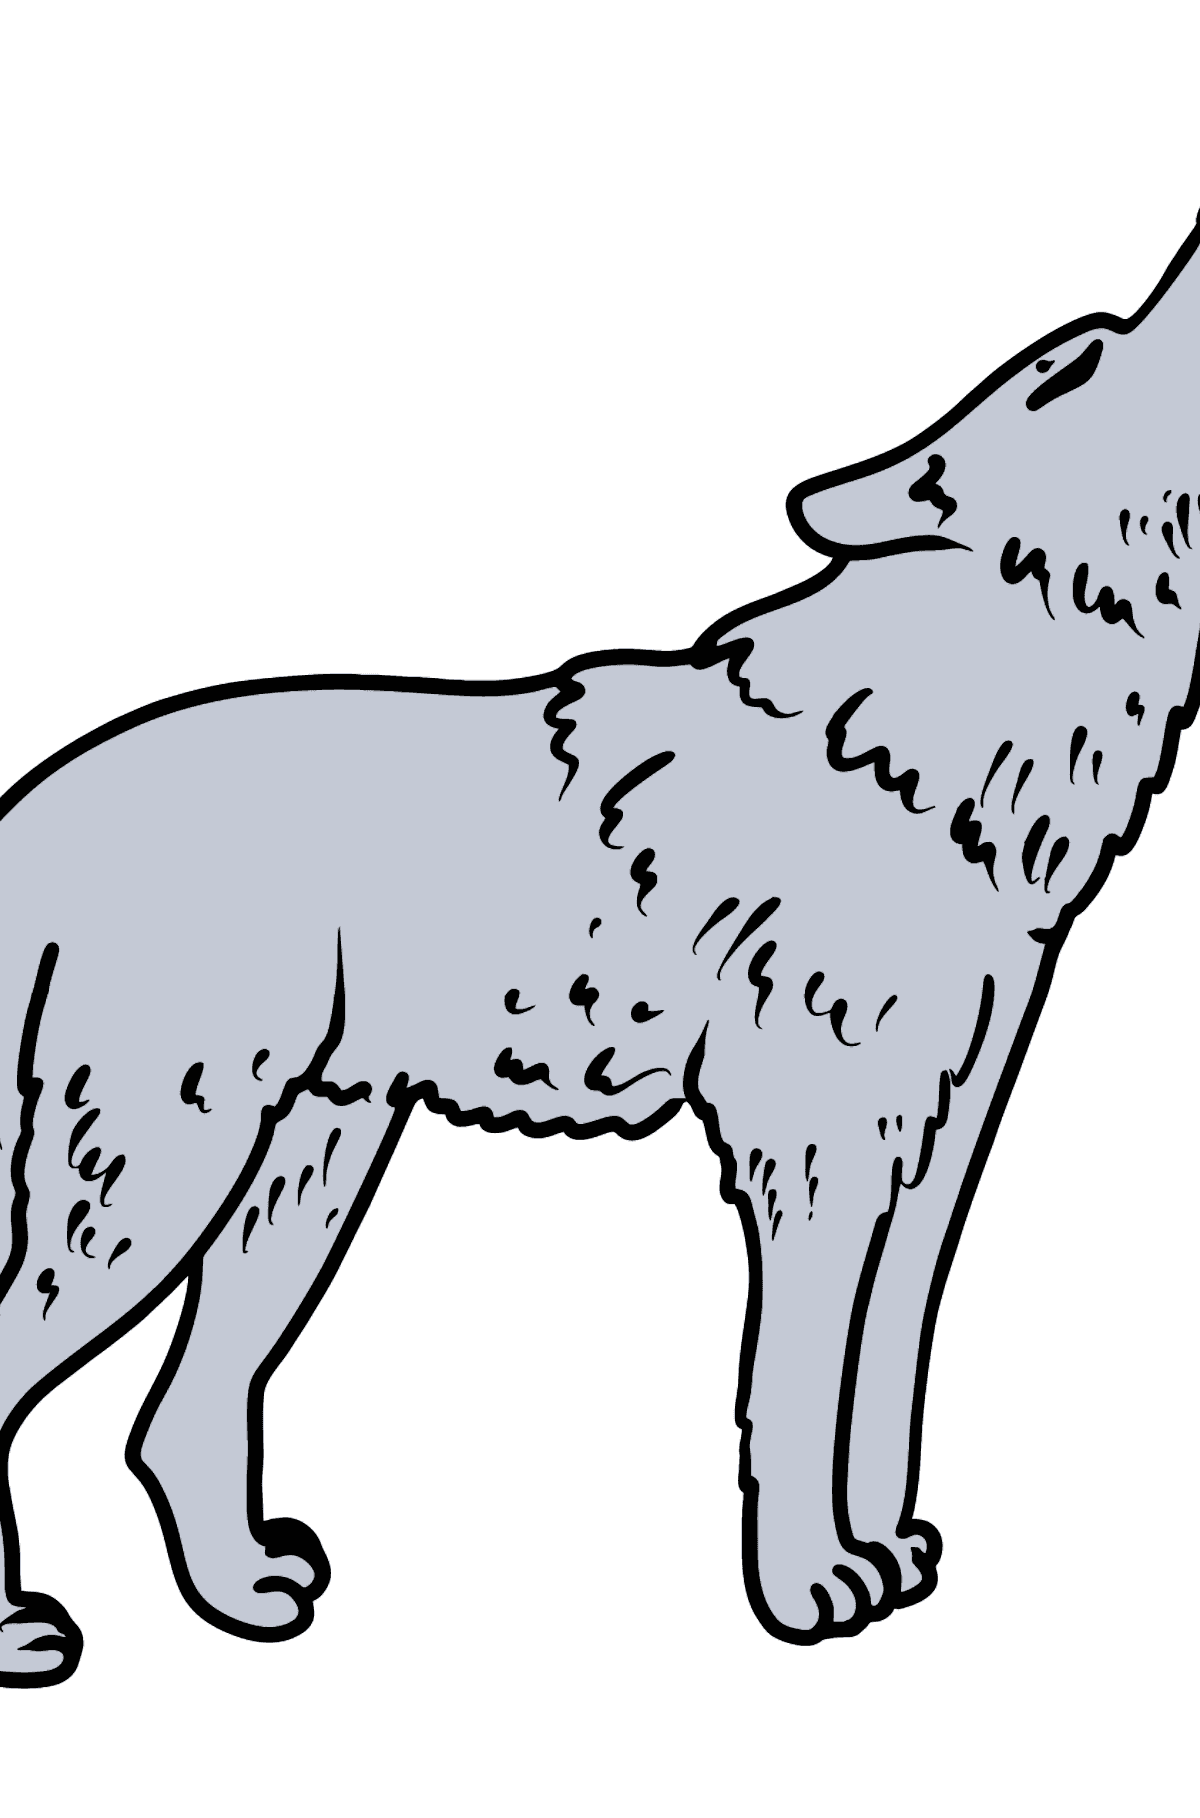 Wolf coloring page - Coloring Pages for Kids